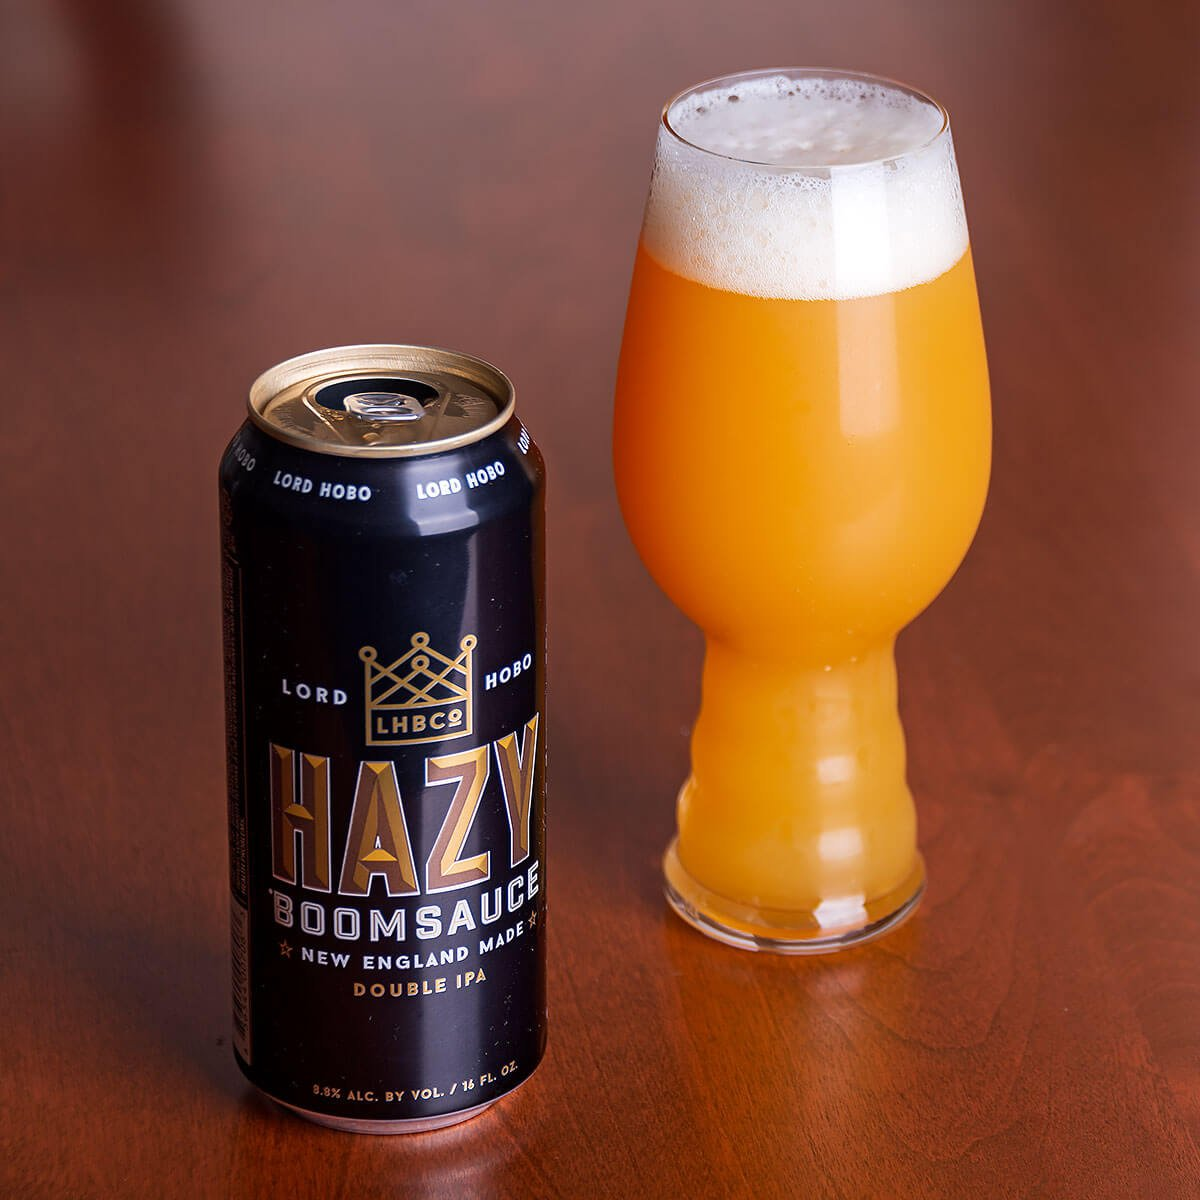 Hazy Boomsauce, a New England-style Double IPA by Lord Hobo Brewing Co.